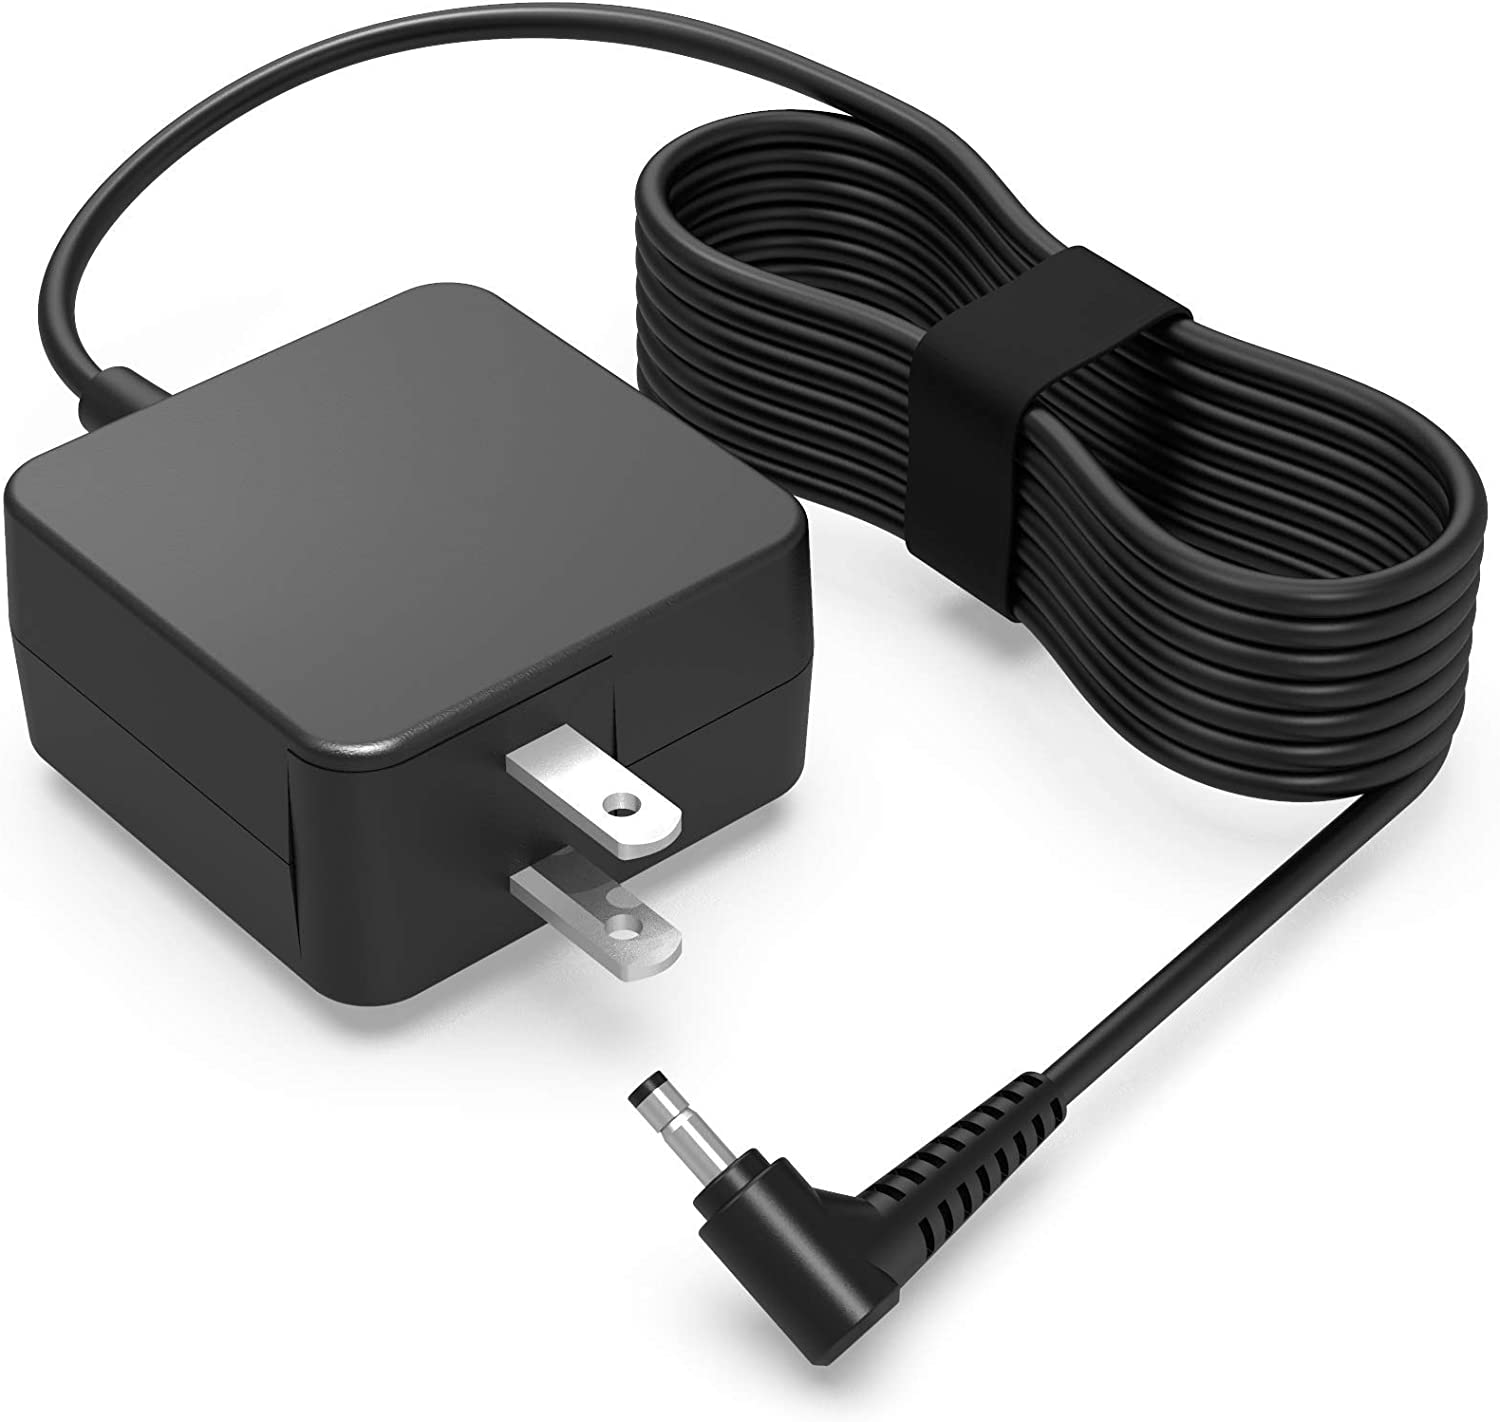 45W AC Charger Fit Popular products for Max 42% OFF Lenovo S145 S145-14 S340-15 IdeaPad S340